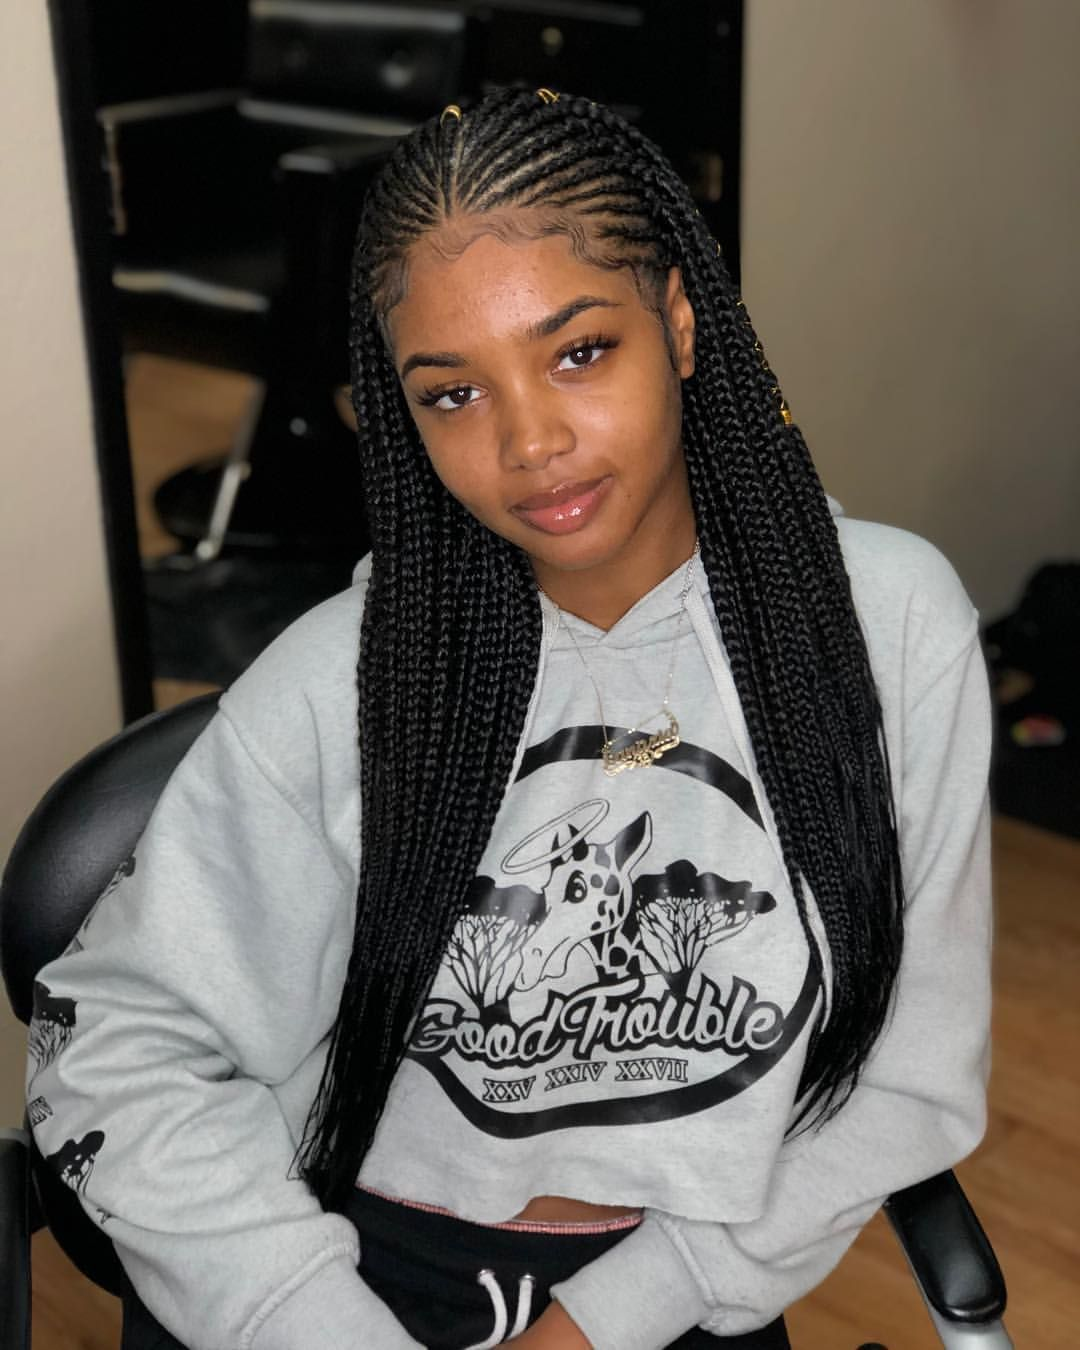 Most Recent Photos Two Braided Hairstyles Suggestions Braided Hairstyles Are Extremely We In 2021 Braids For Black Hair African Hair Braiding Styles Braided Hairstyles